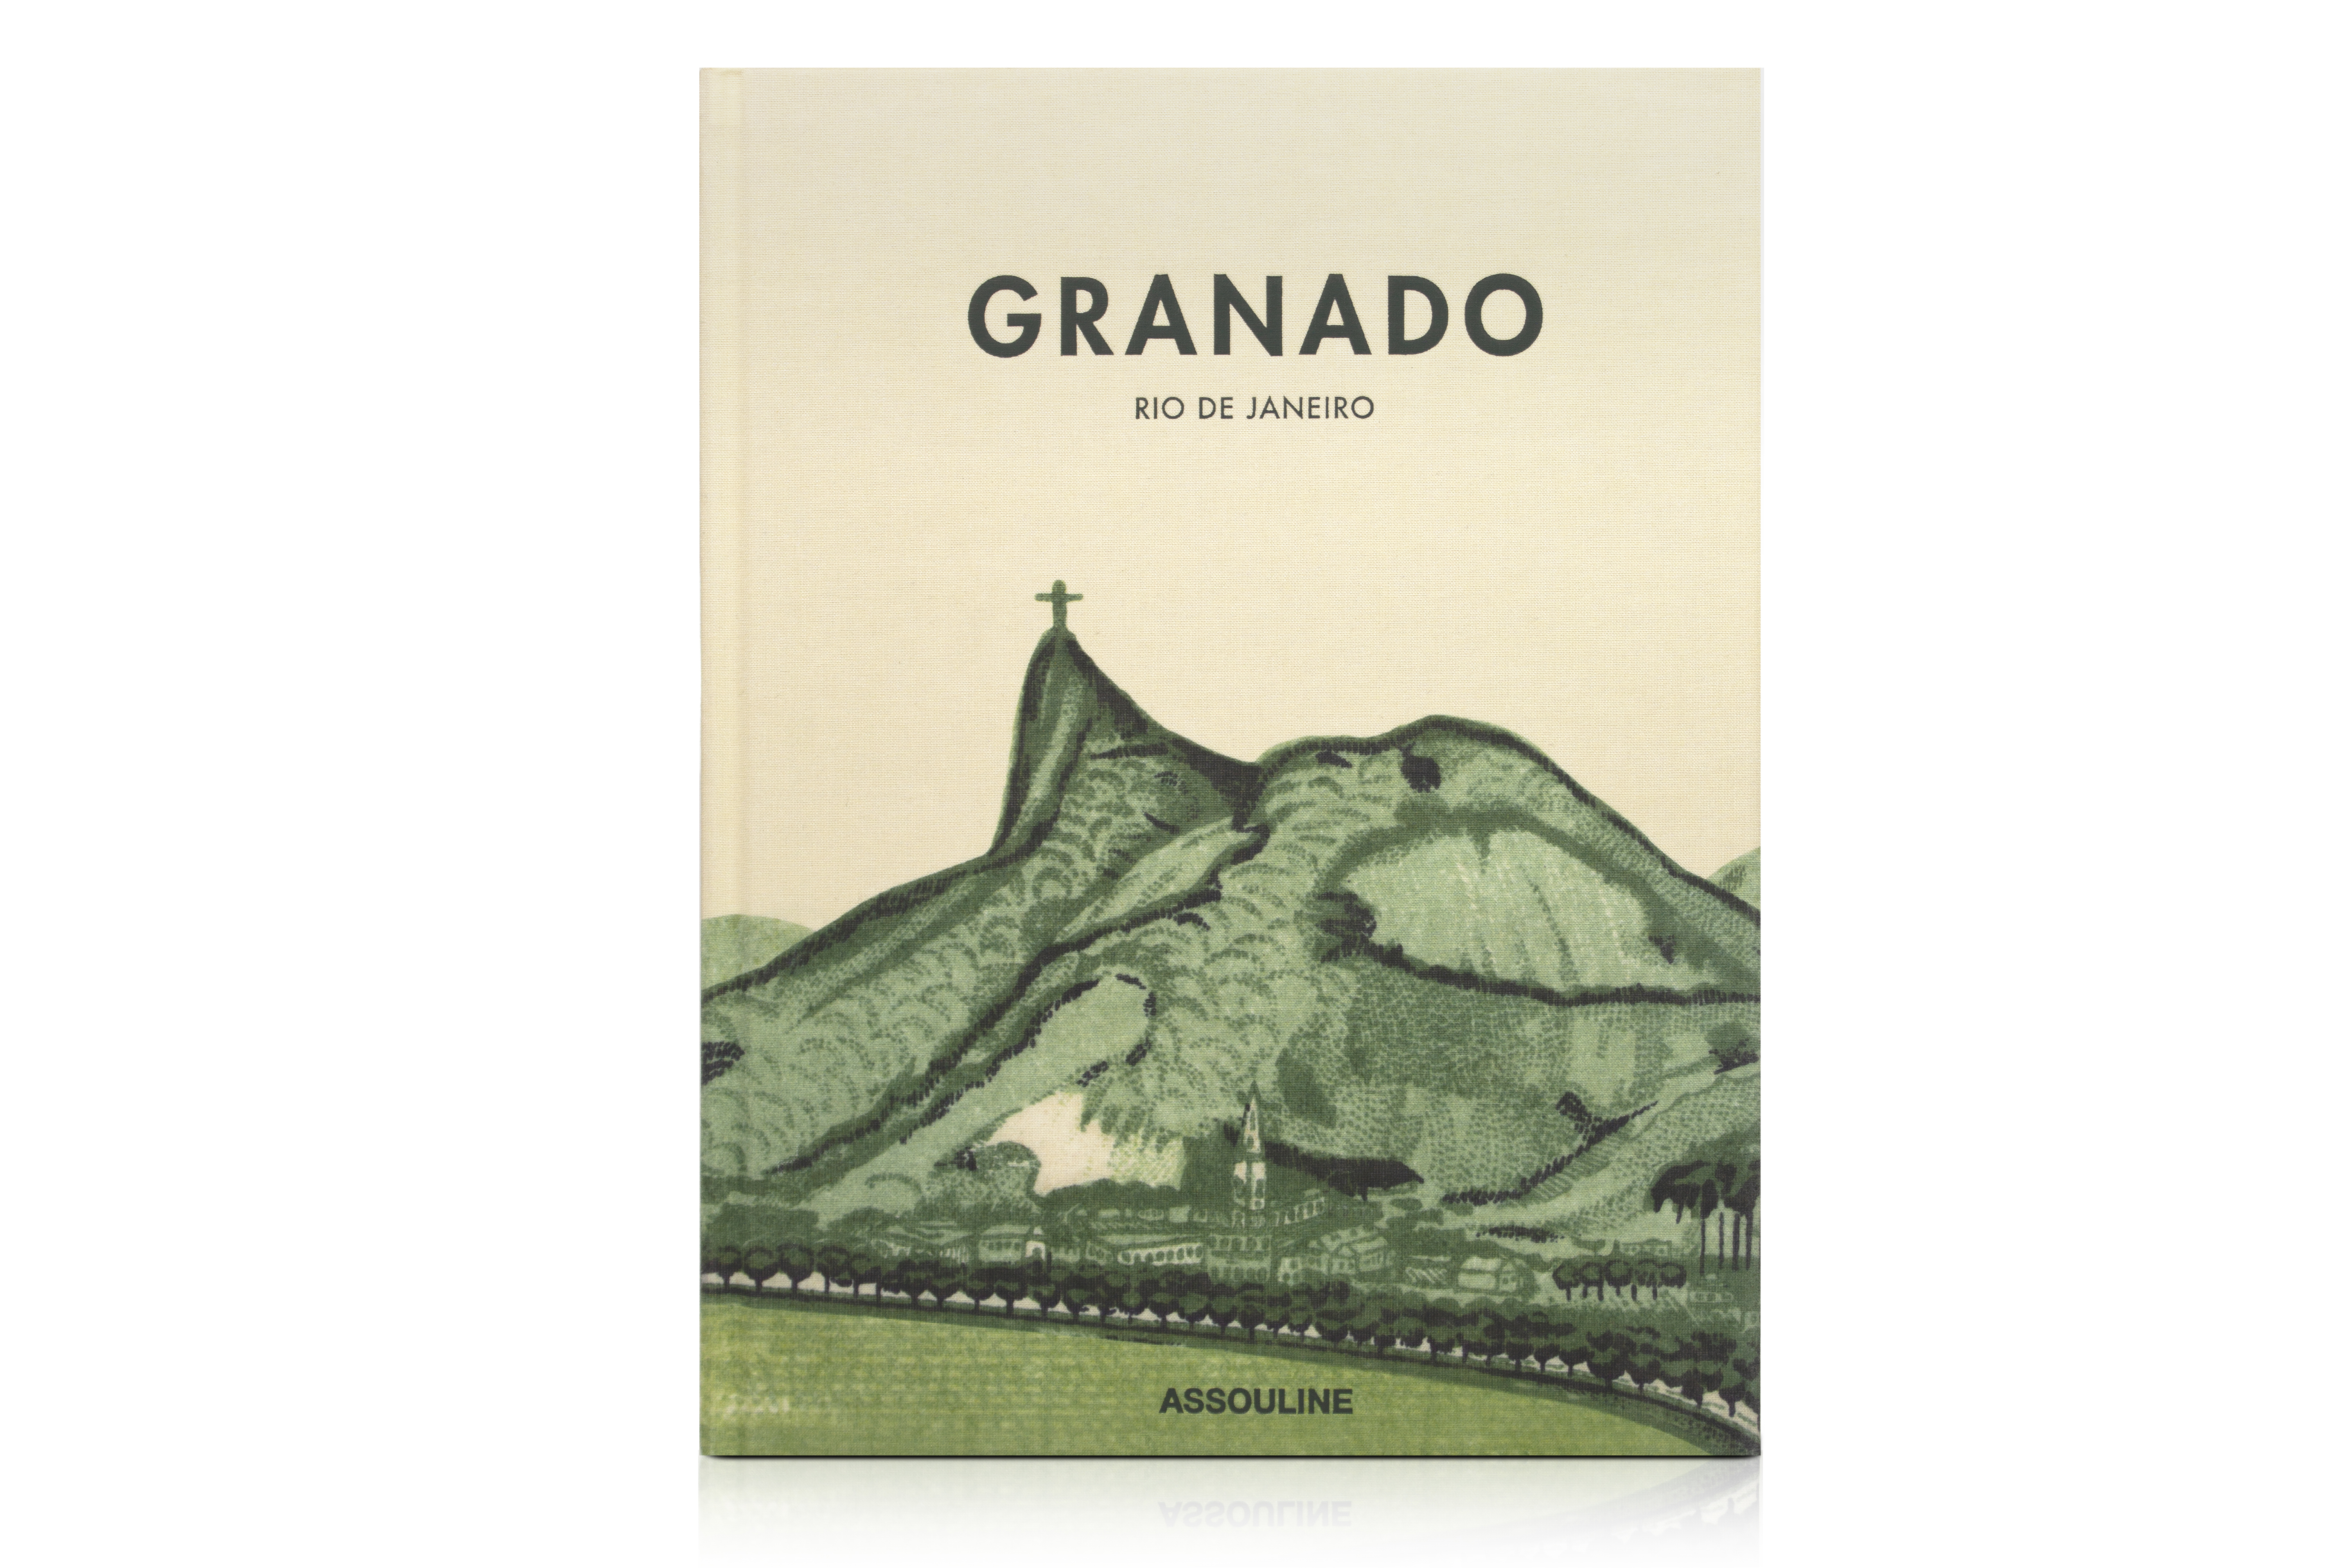 Granado's book published by Assouline.